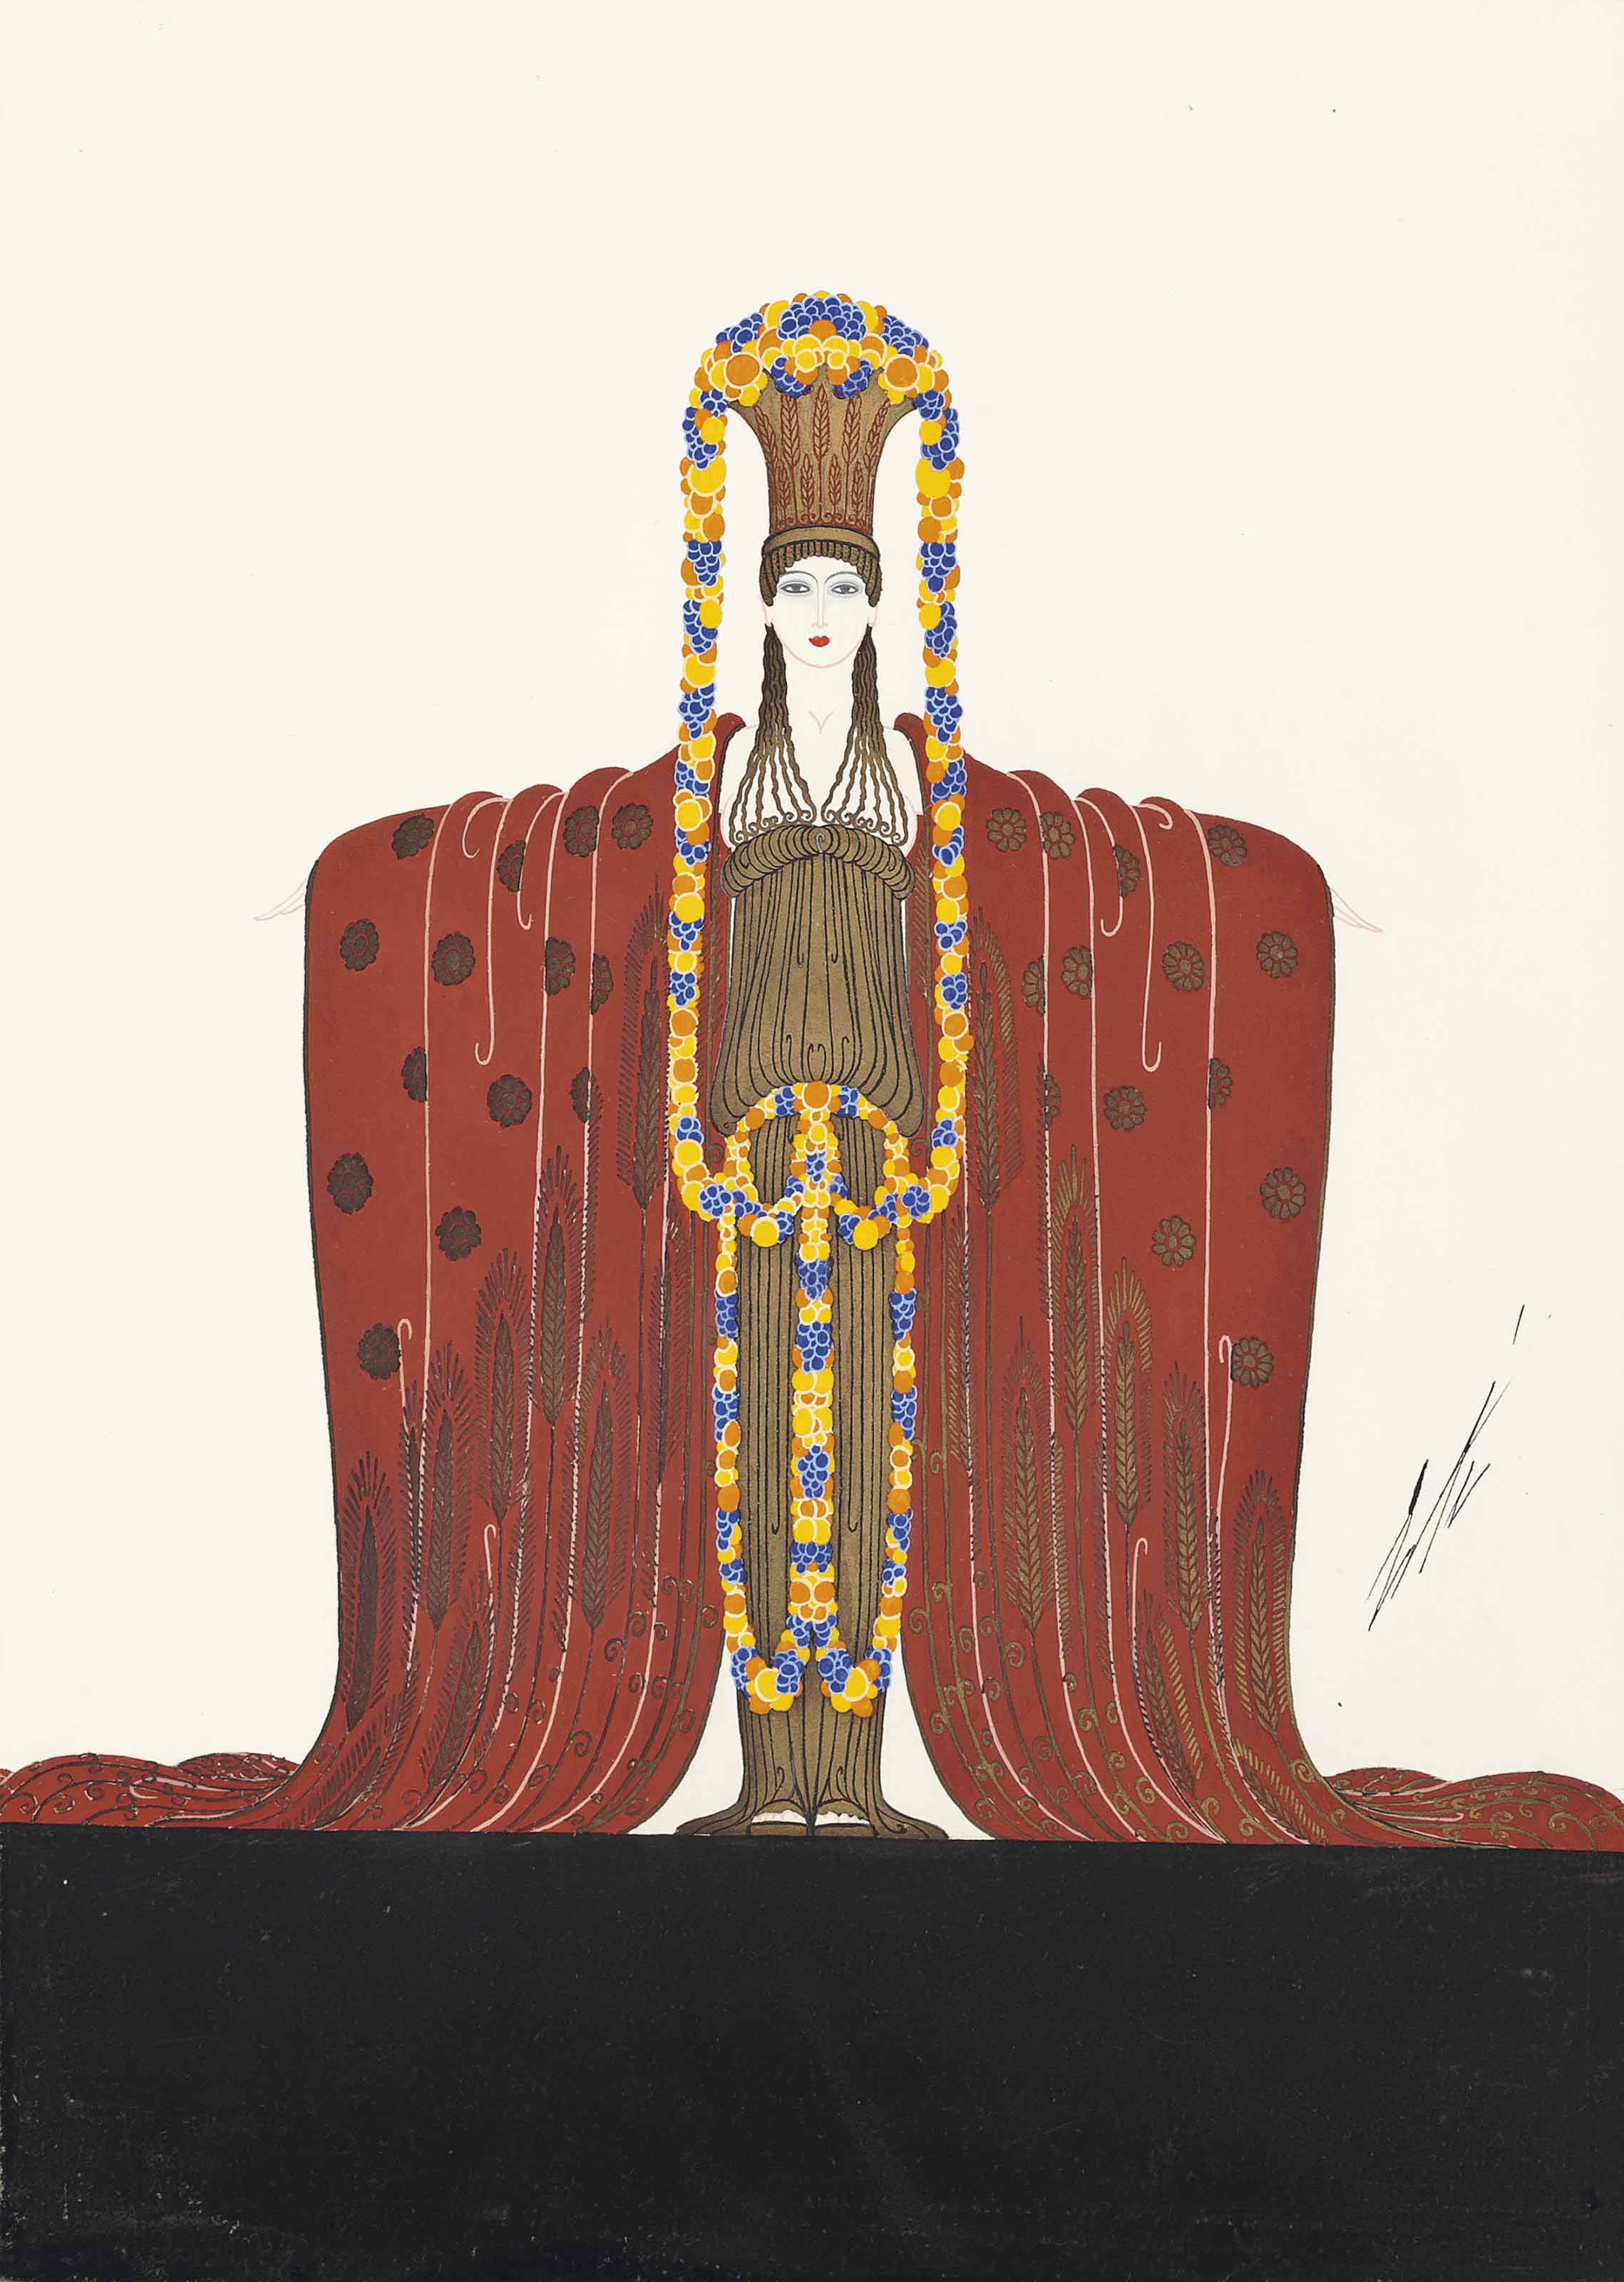 Costume design for Demeter from 'Les Idoles' at the Folies Bergere 1924; A design for the 'Treasures of Indochina' at L'Alcazar de Marseilles, 1923; and A study for The Pendant from 'Les Bijoux de Perles' at the Folies Bergere, 1923.